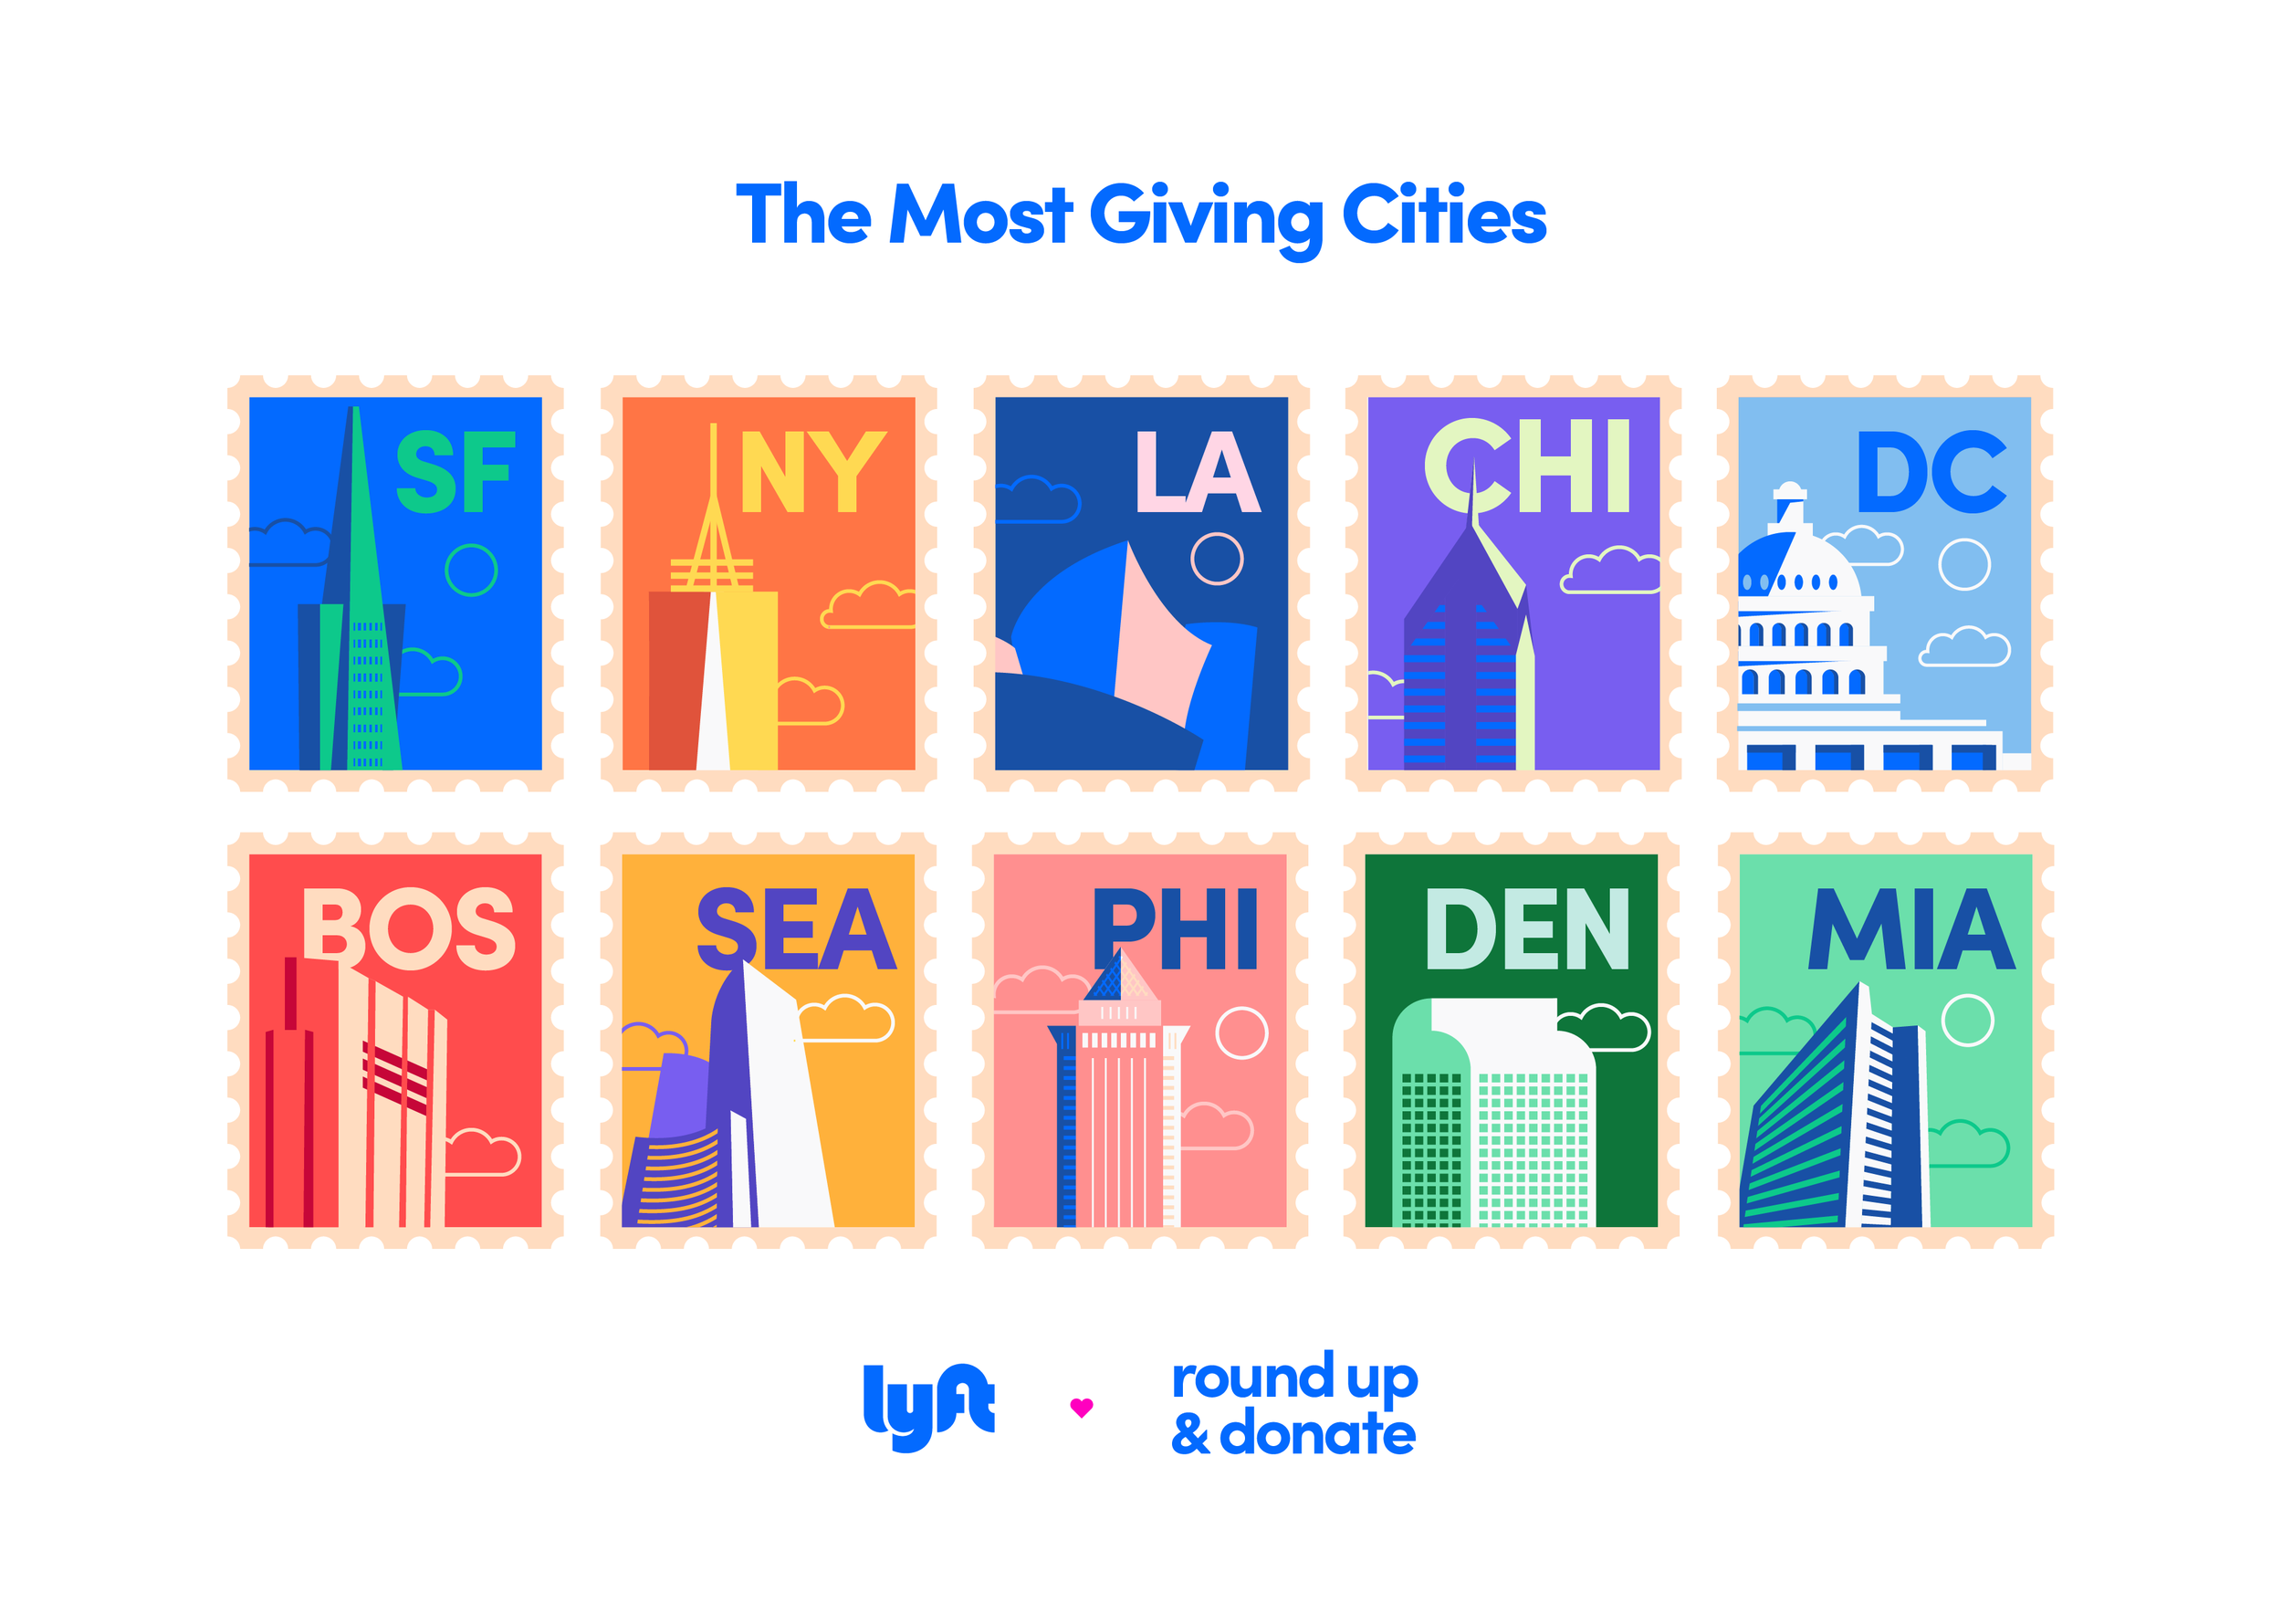 GivingCities_2x (1).png